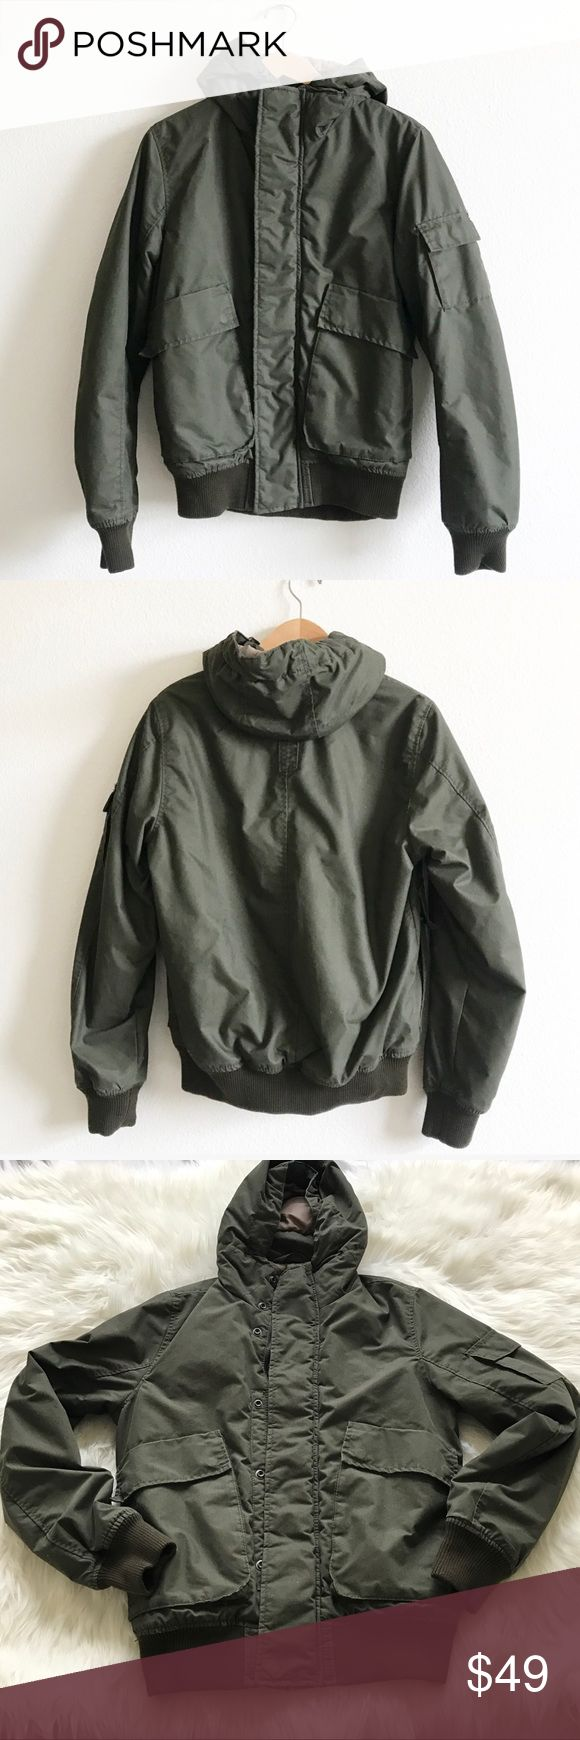 MENS H&M LOGG Military Olive Green parka jacket S MENS H&M L.O.G.G. Military Olive Green parka cargo  jacket with hood . Size Small . Front zipper enclosure with snaps . Side pockets . Lightweight puffer parks hooded jacket . Worn once. Light pen mark on upper right chest, not too visible. May come out in the wash, mentioning for disclosure. #hm #logg #fall #jacket #coat #military #utility #cargo #parka #puffer #green #camping #hipster H&M Jackets & Coats